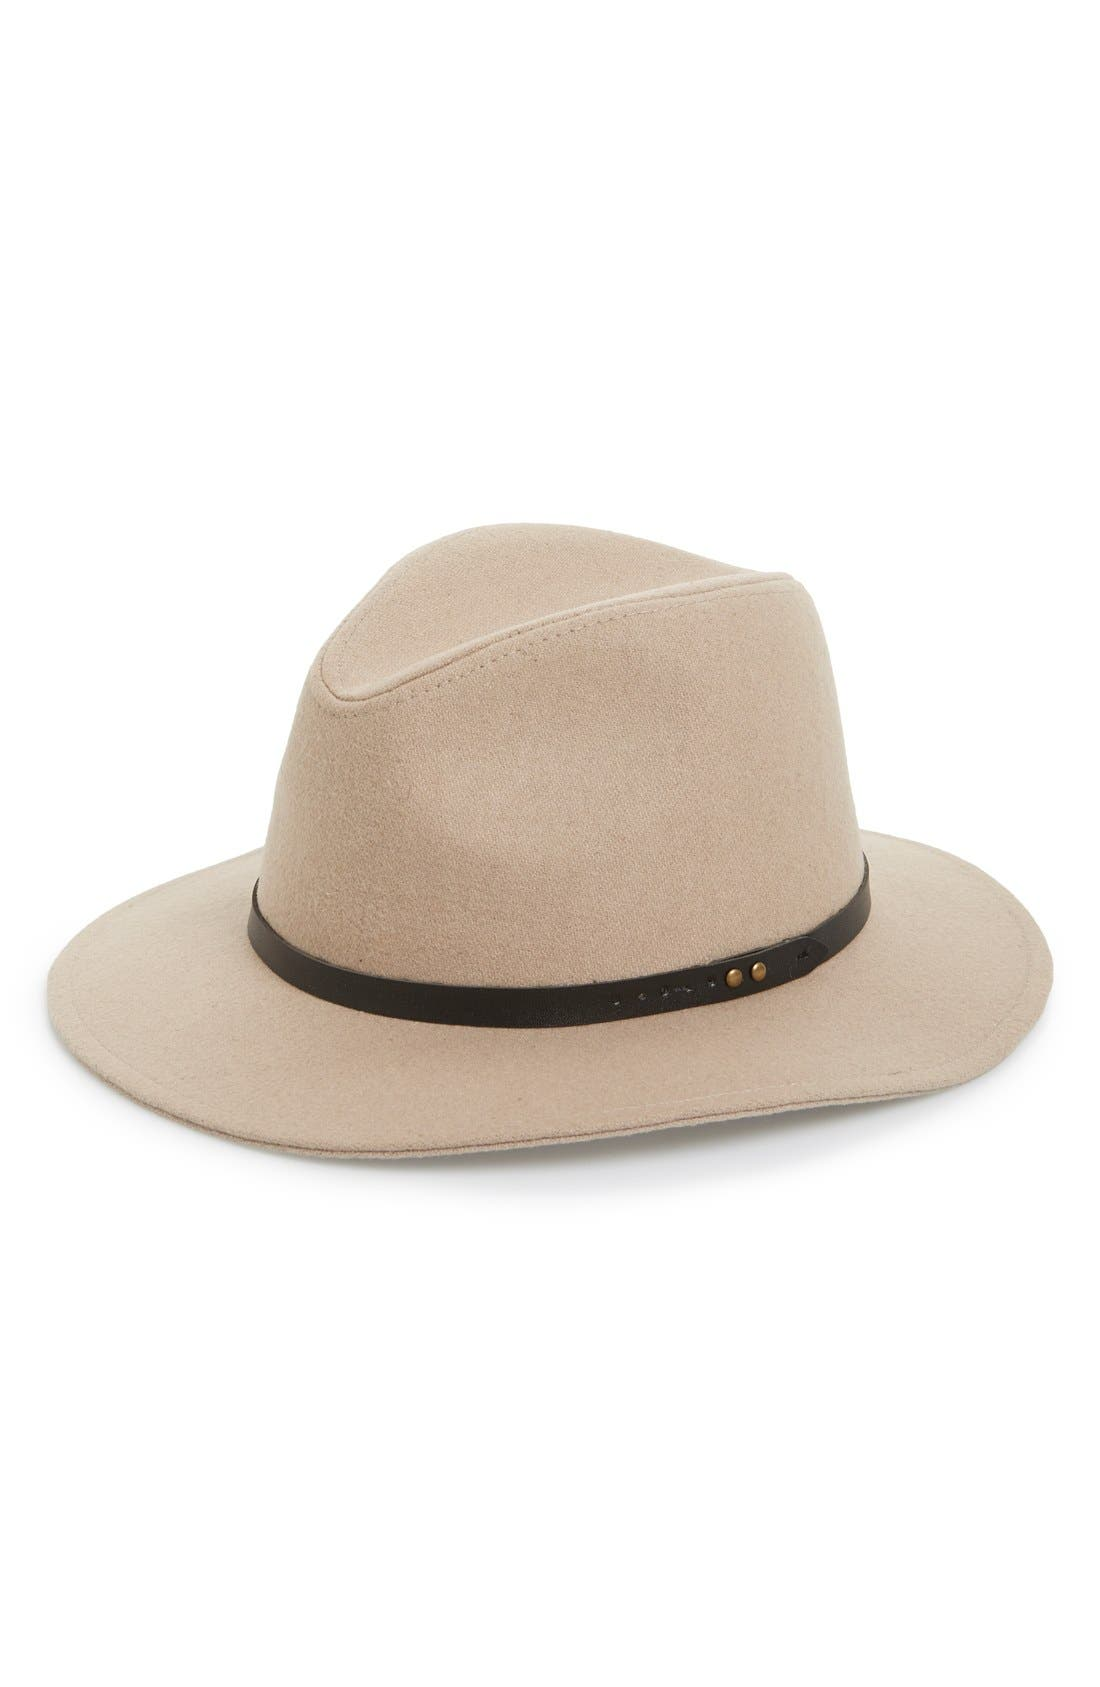 Alternate Image 1 Selected - Phase 3 Rivet Fedora